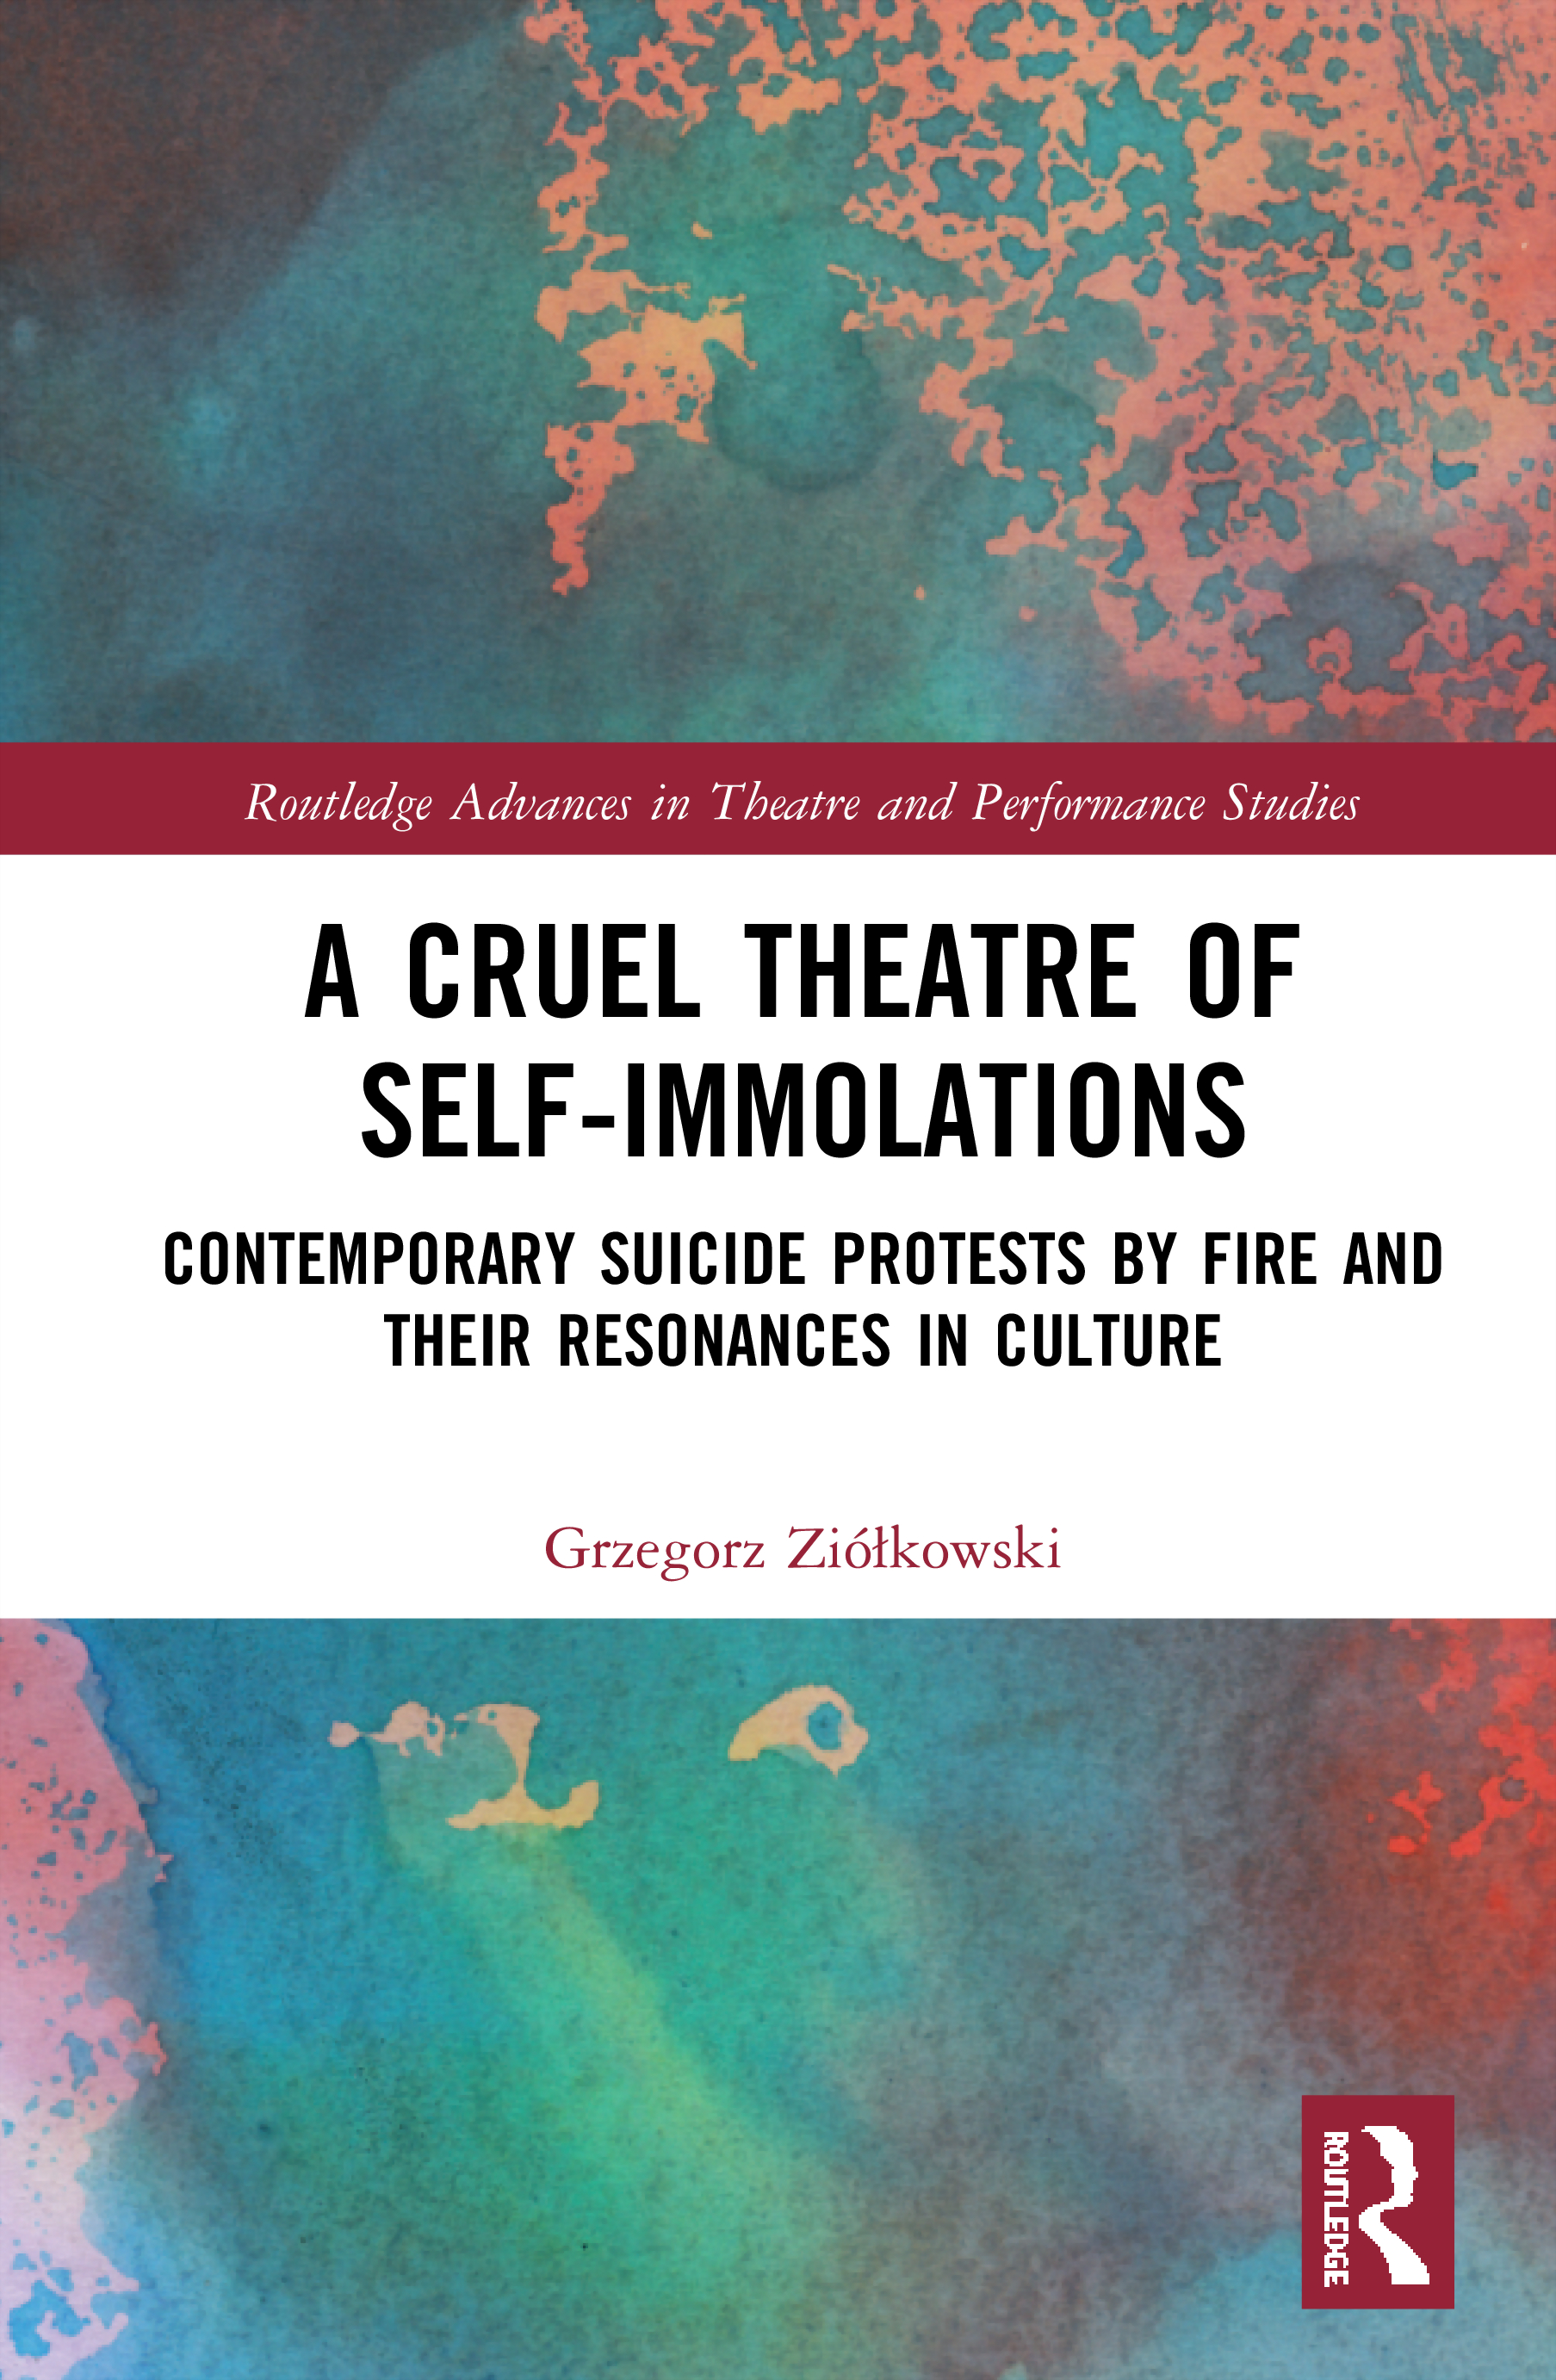 A Cruel Theatre of Self-Immolations: Contemporary Suicide Protests by Fire and Their Resonances in Culture book cover